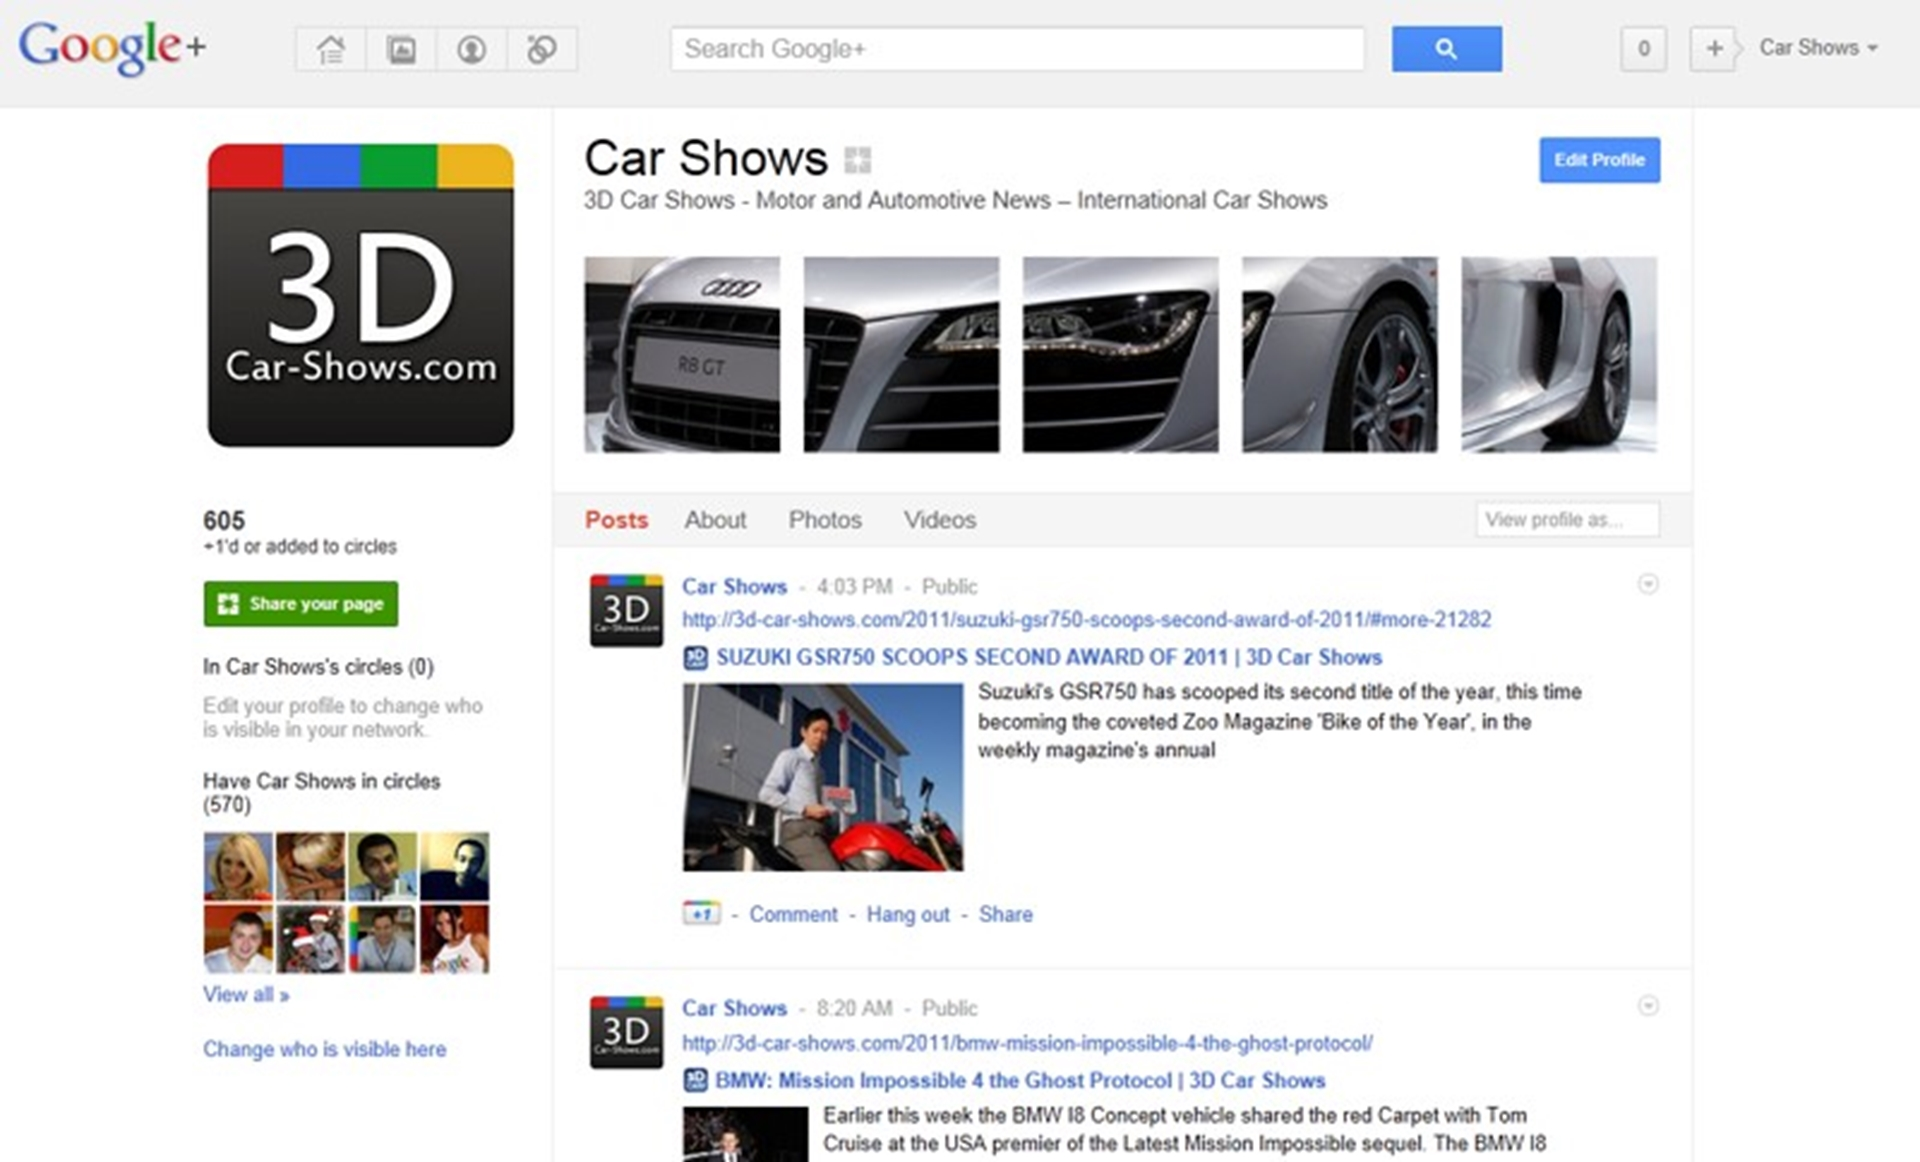 Google+ Pages New Look